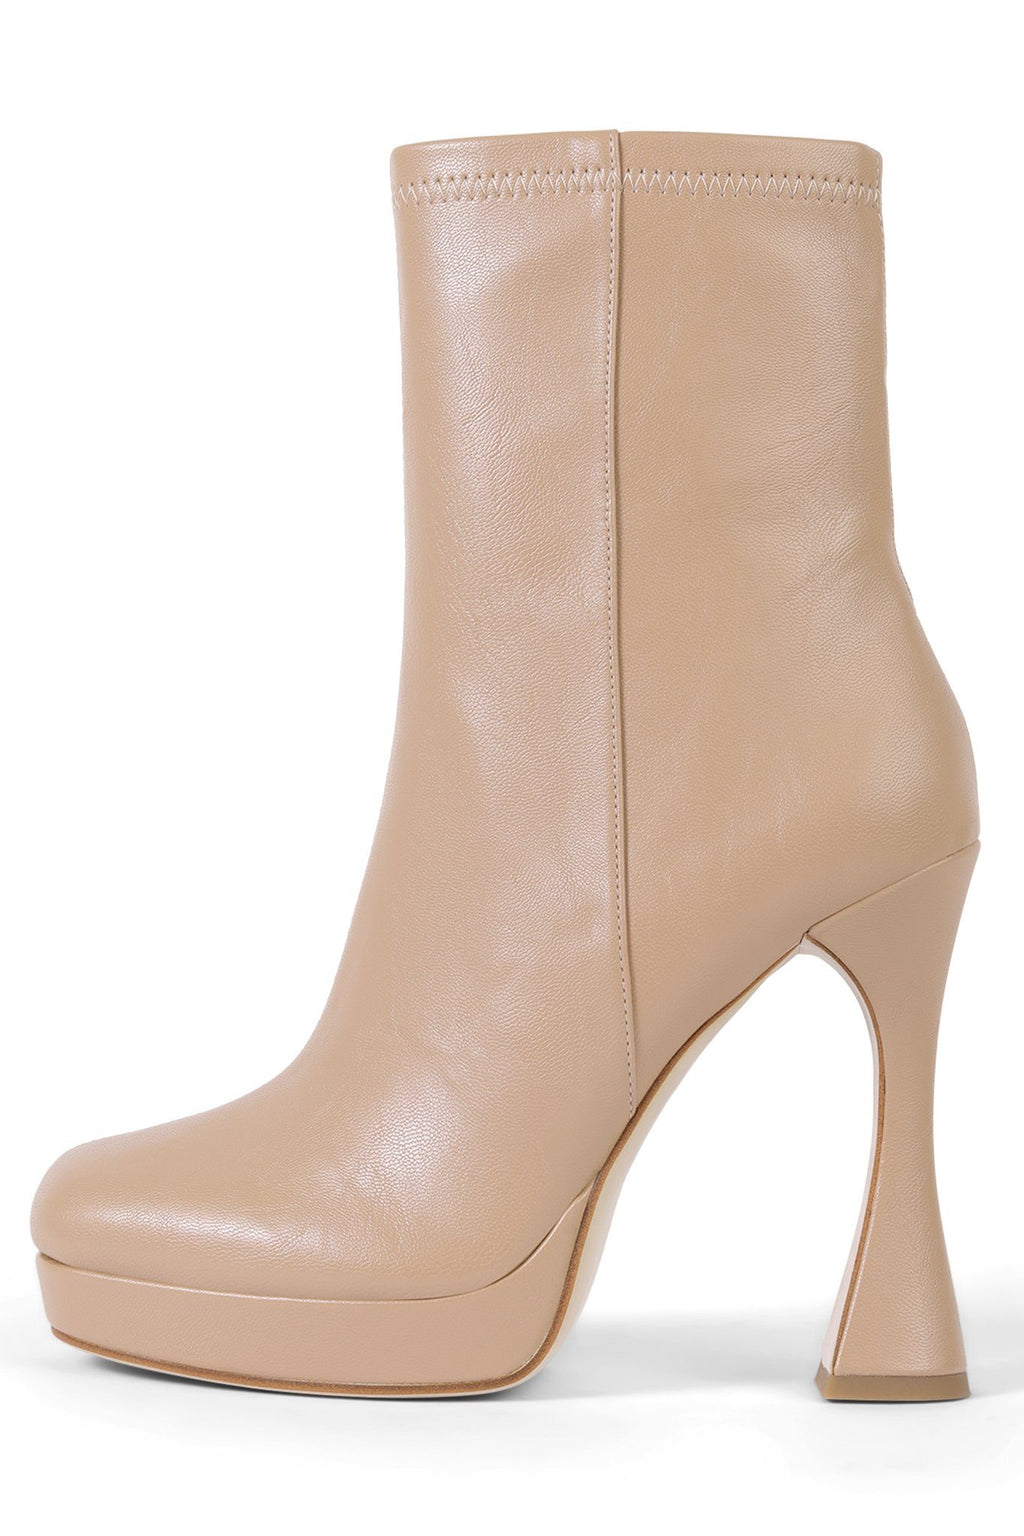 BEL-AIR Platform Boot STRATEGY Beige 6